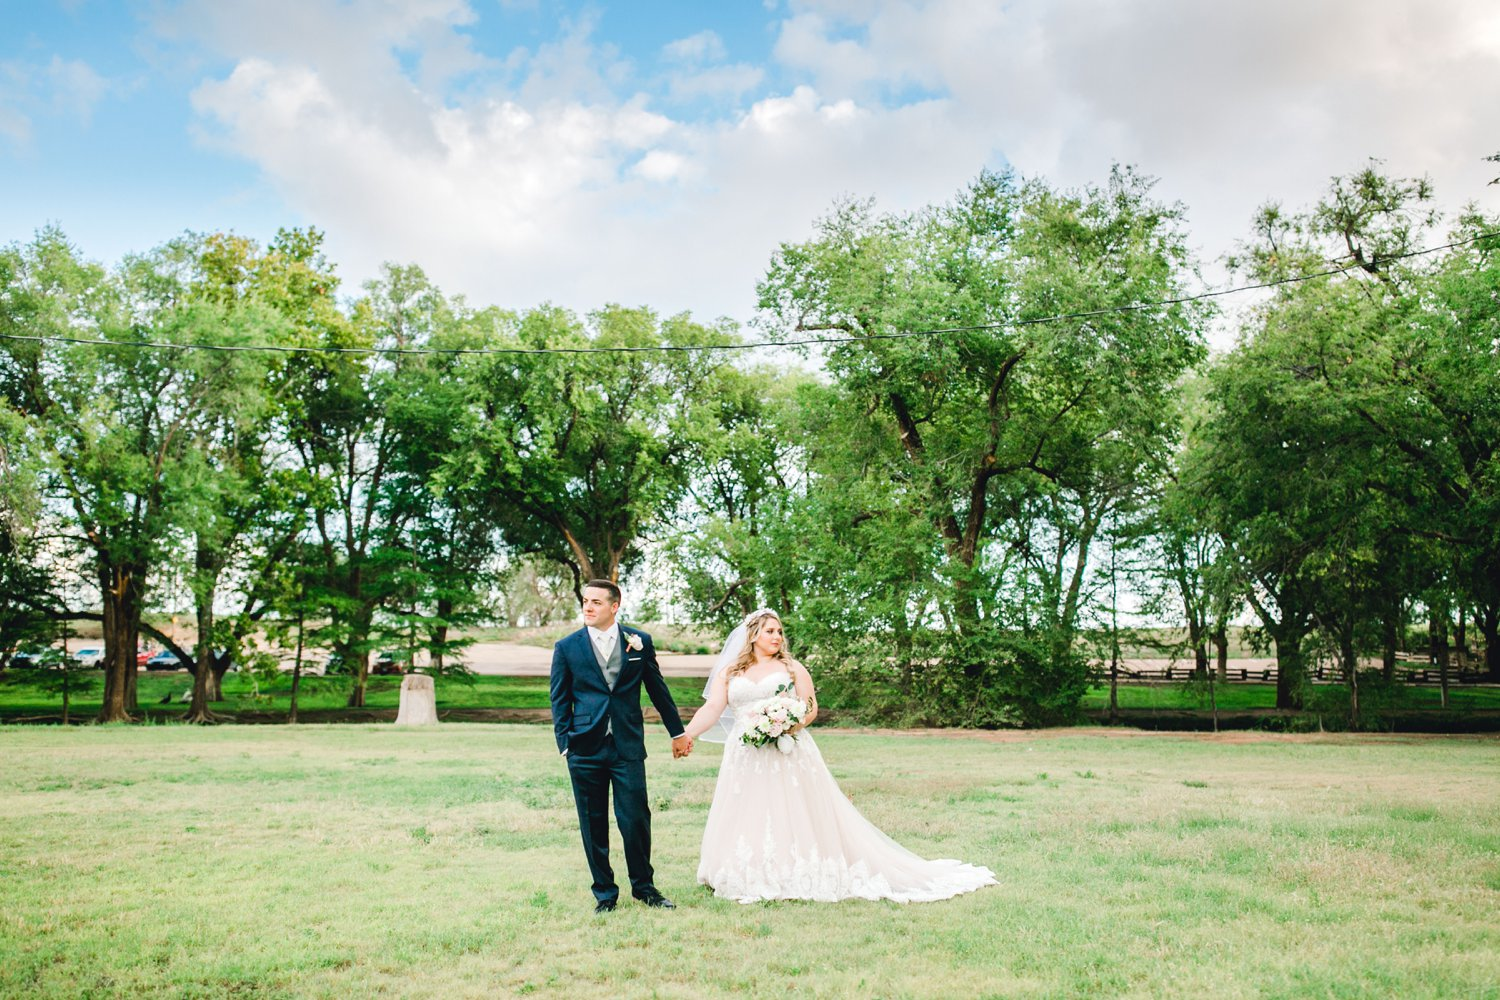 SARAH_AND_GEOFFREY_SHARP_SPIRIT_RANCH_WEDDING_ALLEEJ_LUBBOCK_TX_0105.jpg